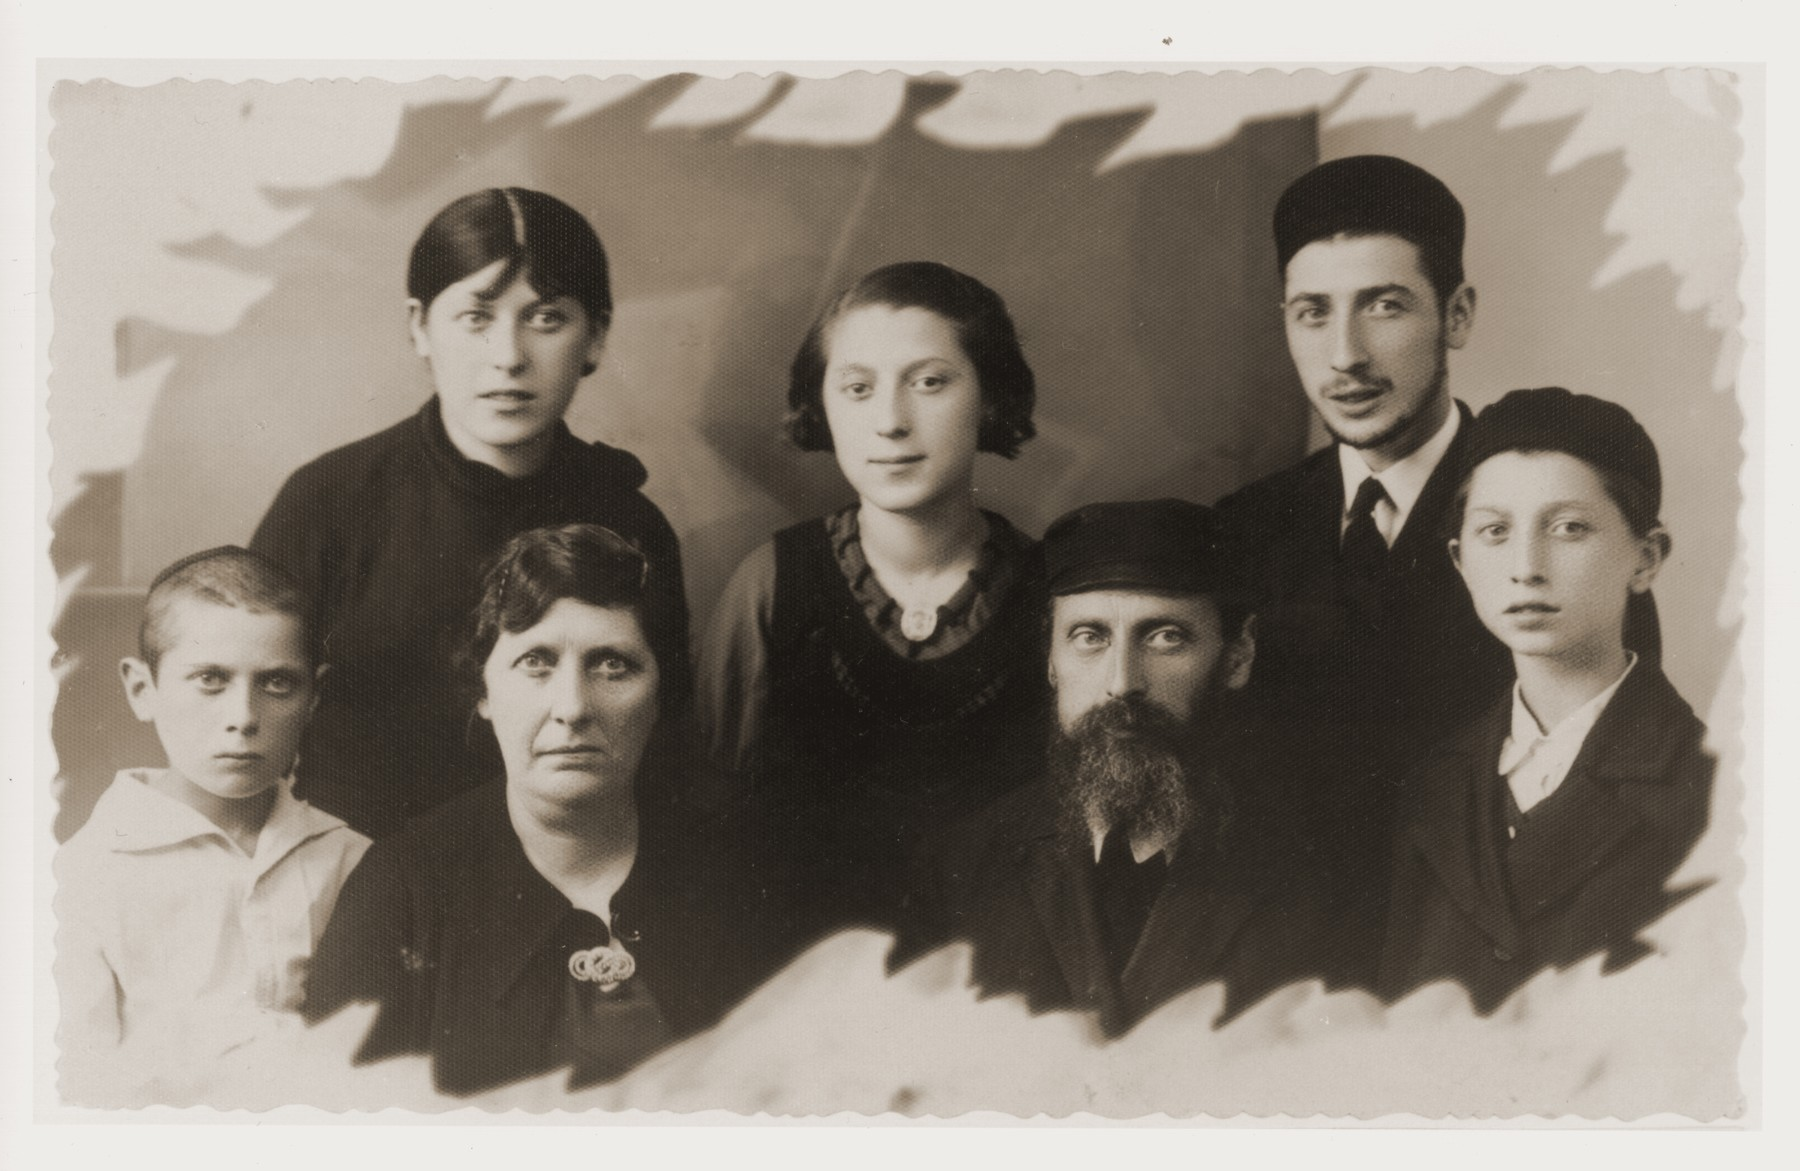 Portrait of the Tenenbaum family taken on the eve of Estera's departure for the United States.    Pictured in the first row, from left to right are: Fajwel; Anka Leah; Jonas and Szmuel.  In the second row are: Nechama; Estera and Srulik. The oldest brother is not pictured because he lived in Zdunska Wola with his family.